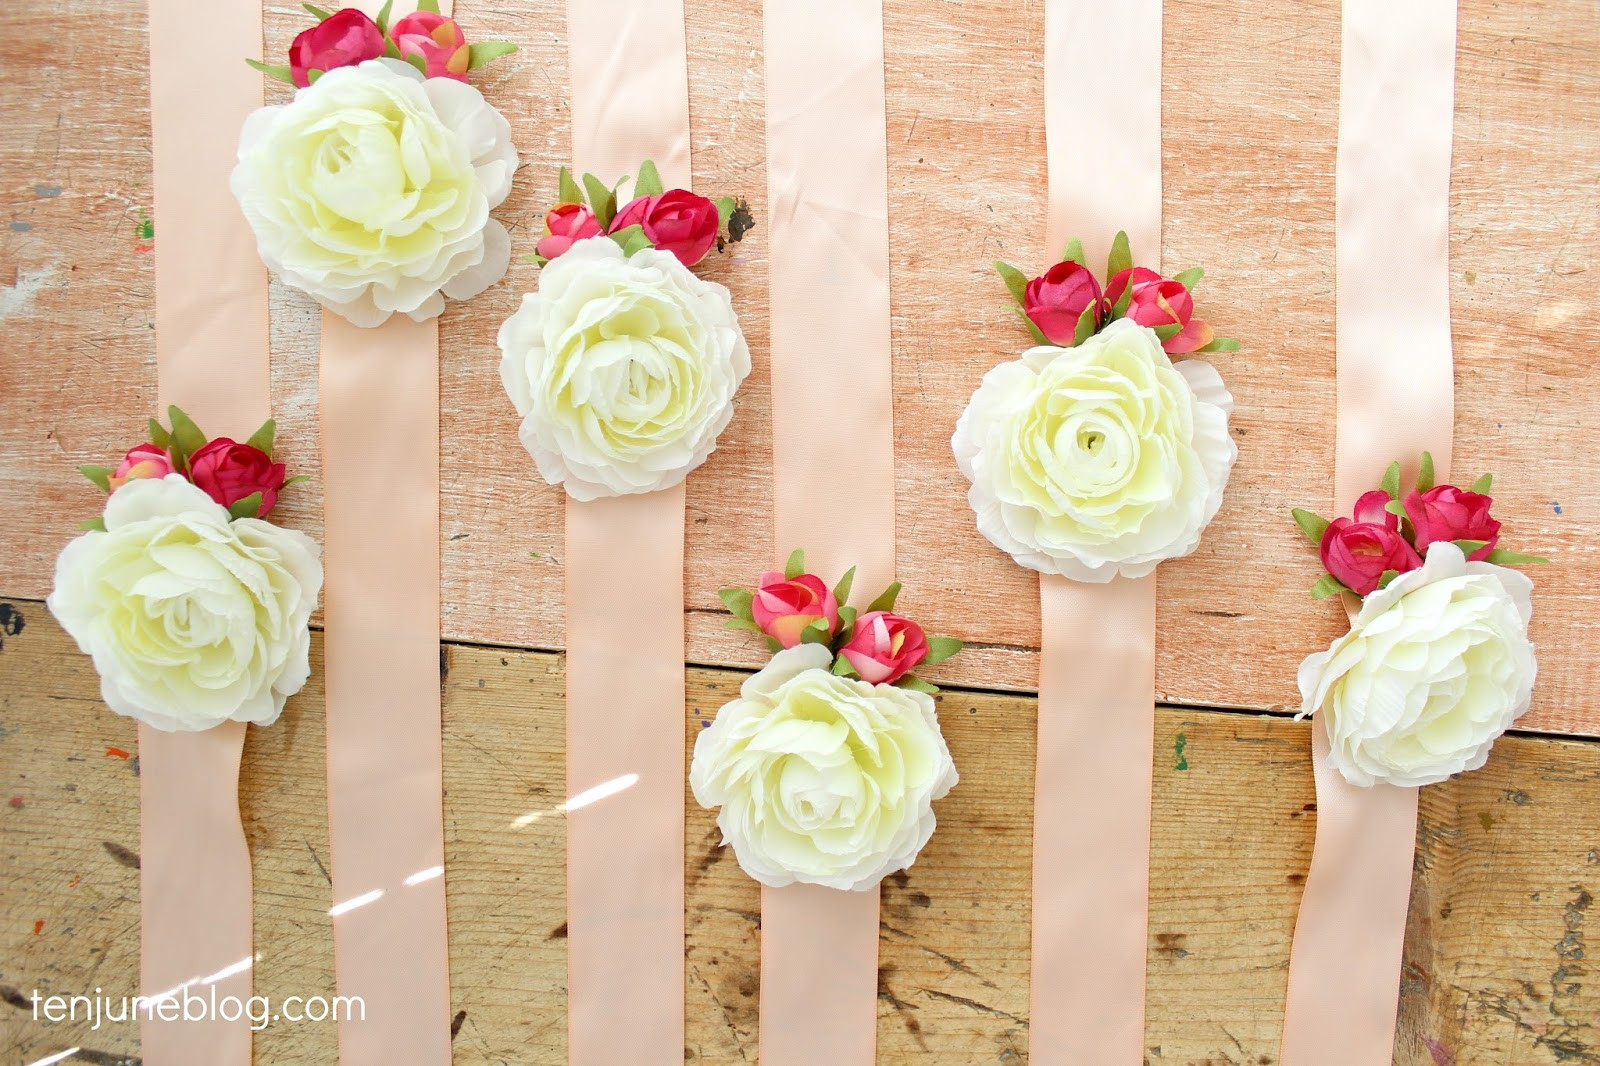 Best ideas about DIY Baby Shower Corsage . Save or Pin Ten June DIY Floral Wristlet Corsage for Baby Bridal Shower Now.